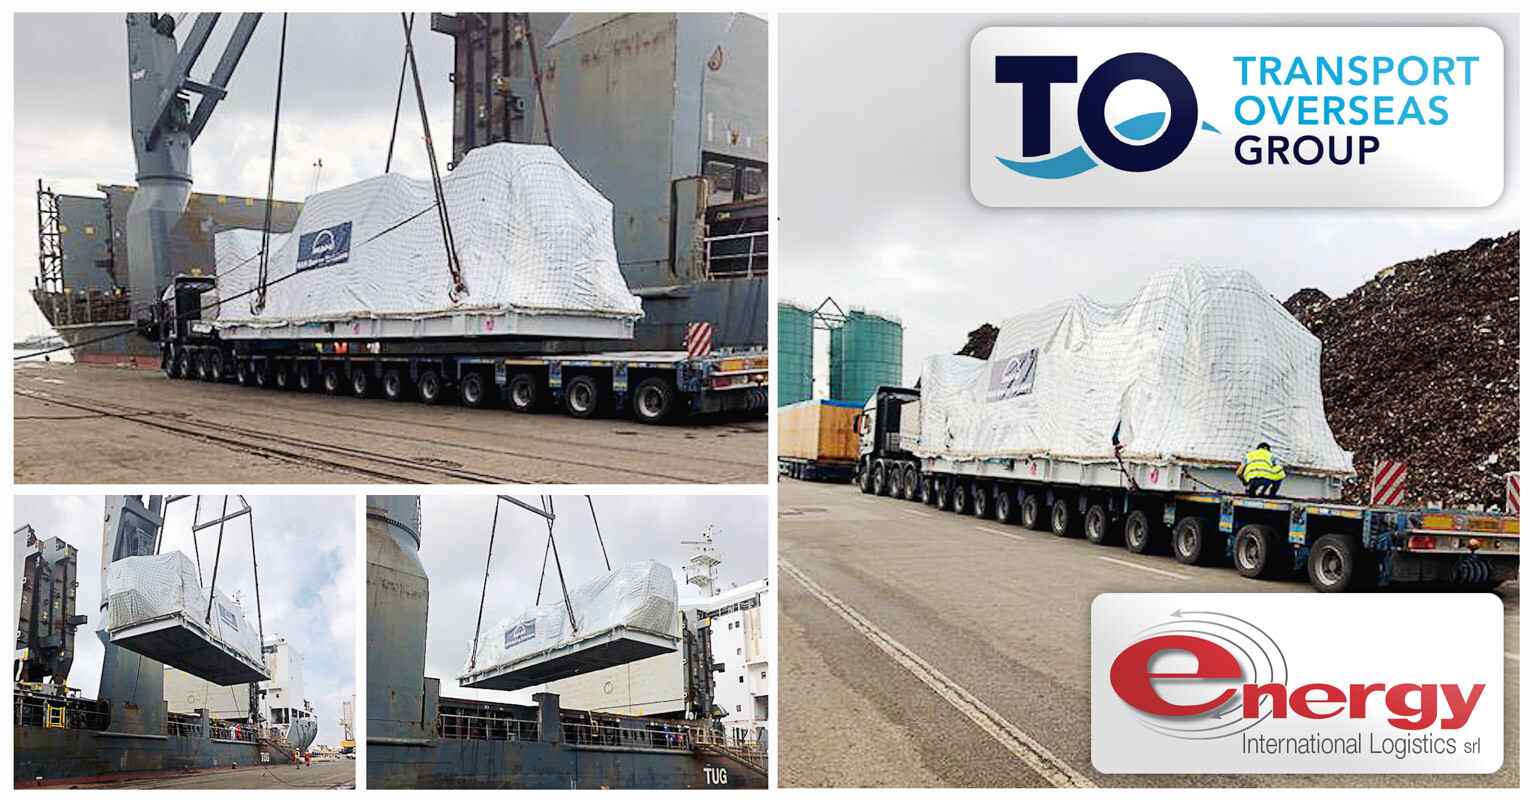 Energy International Logistics was Appointed by Trans Overseas Shipping Bremen to Handle 120-ton Machinery to Hook Vessel in Venice